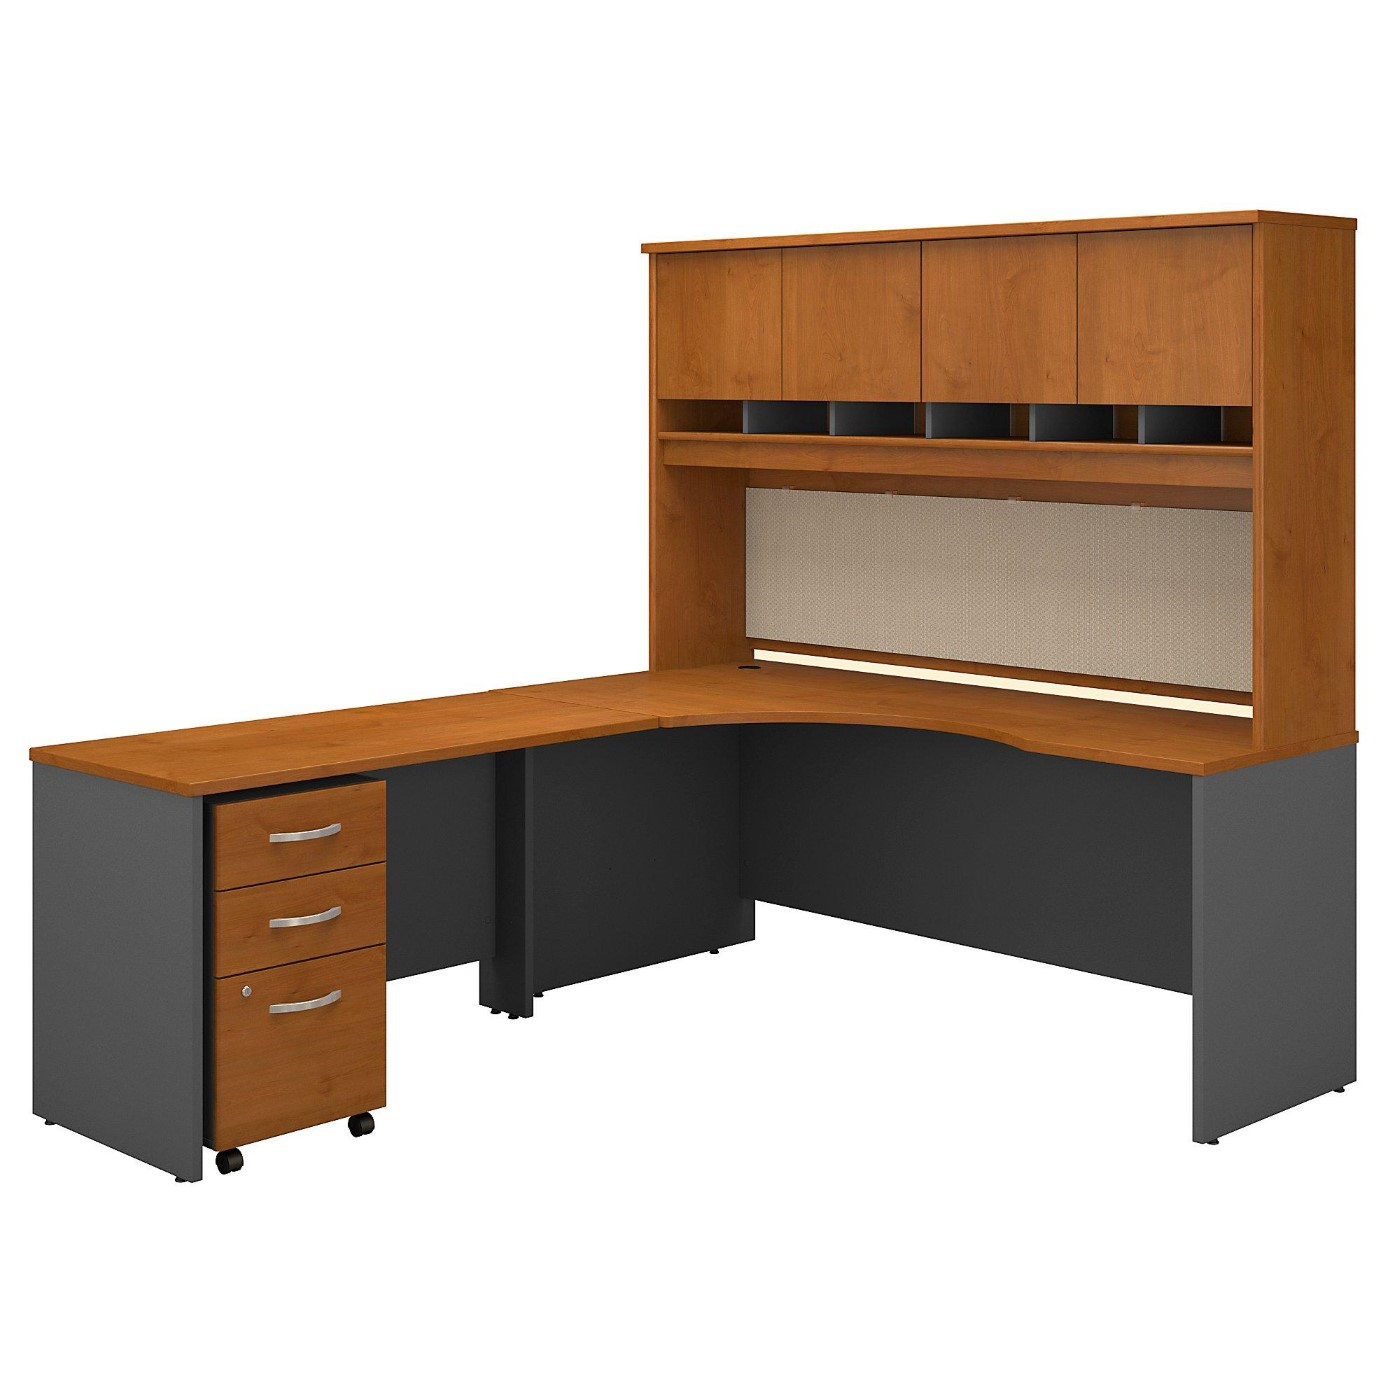 BUSH BUSINESS FURNITURE SERIES C 72W RIGHT HANDED CORNER DESK WITH HUTCH AND MOBILE FILE CABINET. FREE SHIPPING</font></b></font></b>&#x1F384<font color=red><b>ERGONOMICHOME HOLIDAY SALE - ENDS DEC. 17, 2019</b></font>&#x1F384